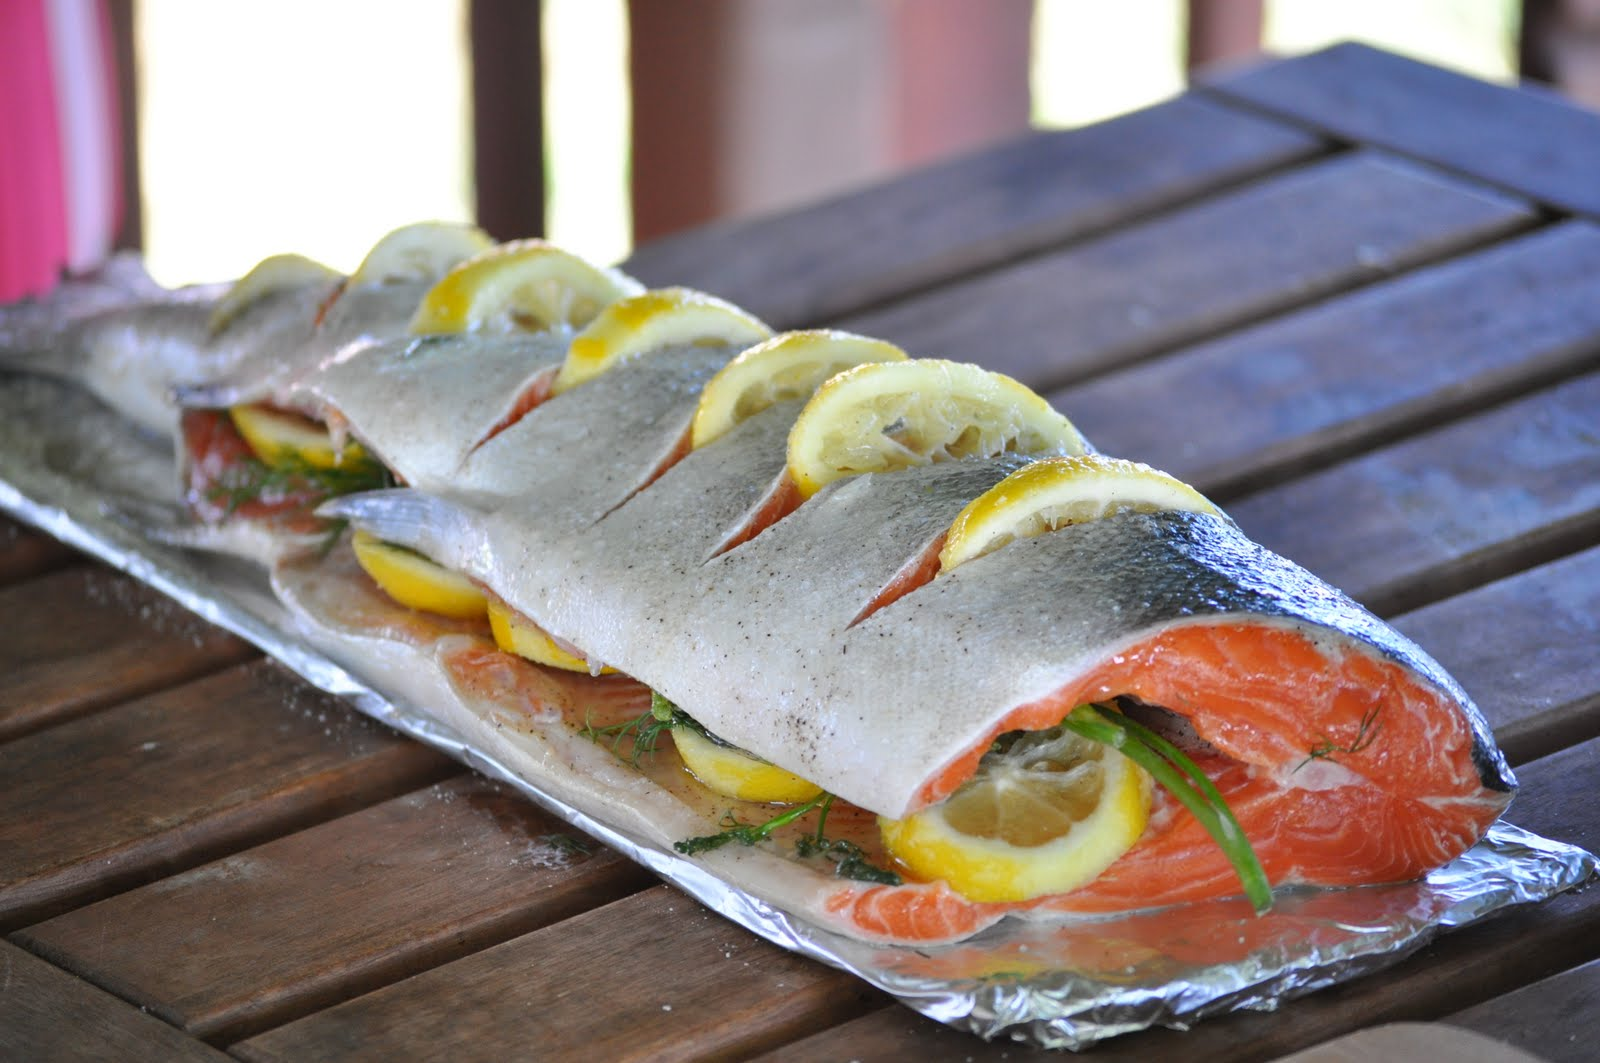 It's The Time Of Year When We Are Receiving Order After Order Of Whole  Salmon… If You Need Some Guidance On How To Cook The Thing For Beautiful  Presentation